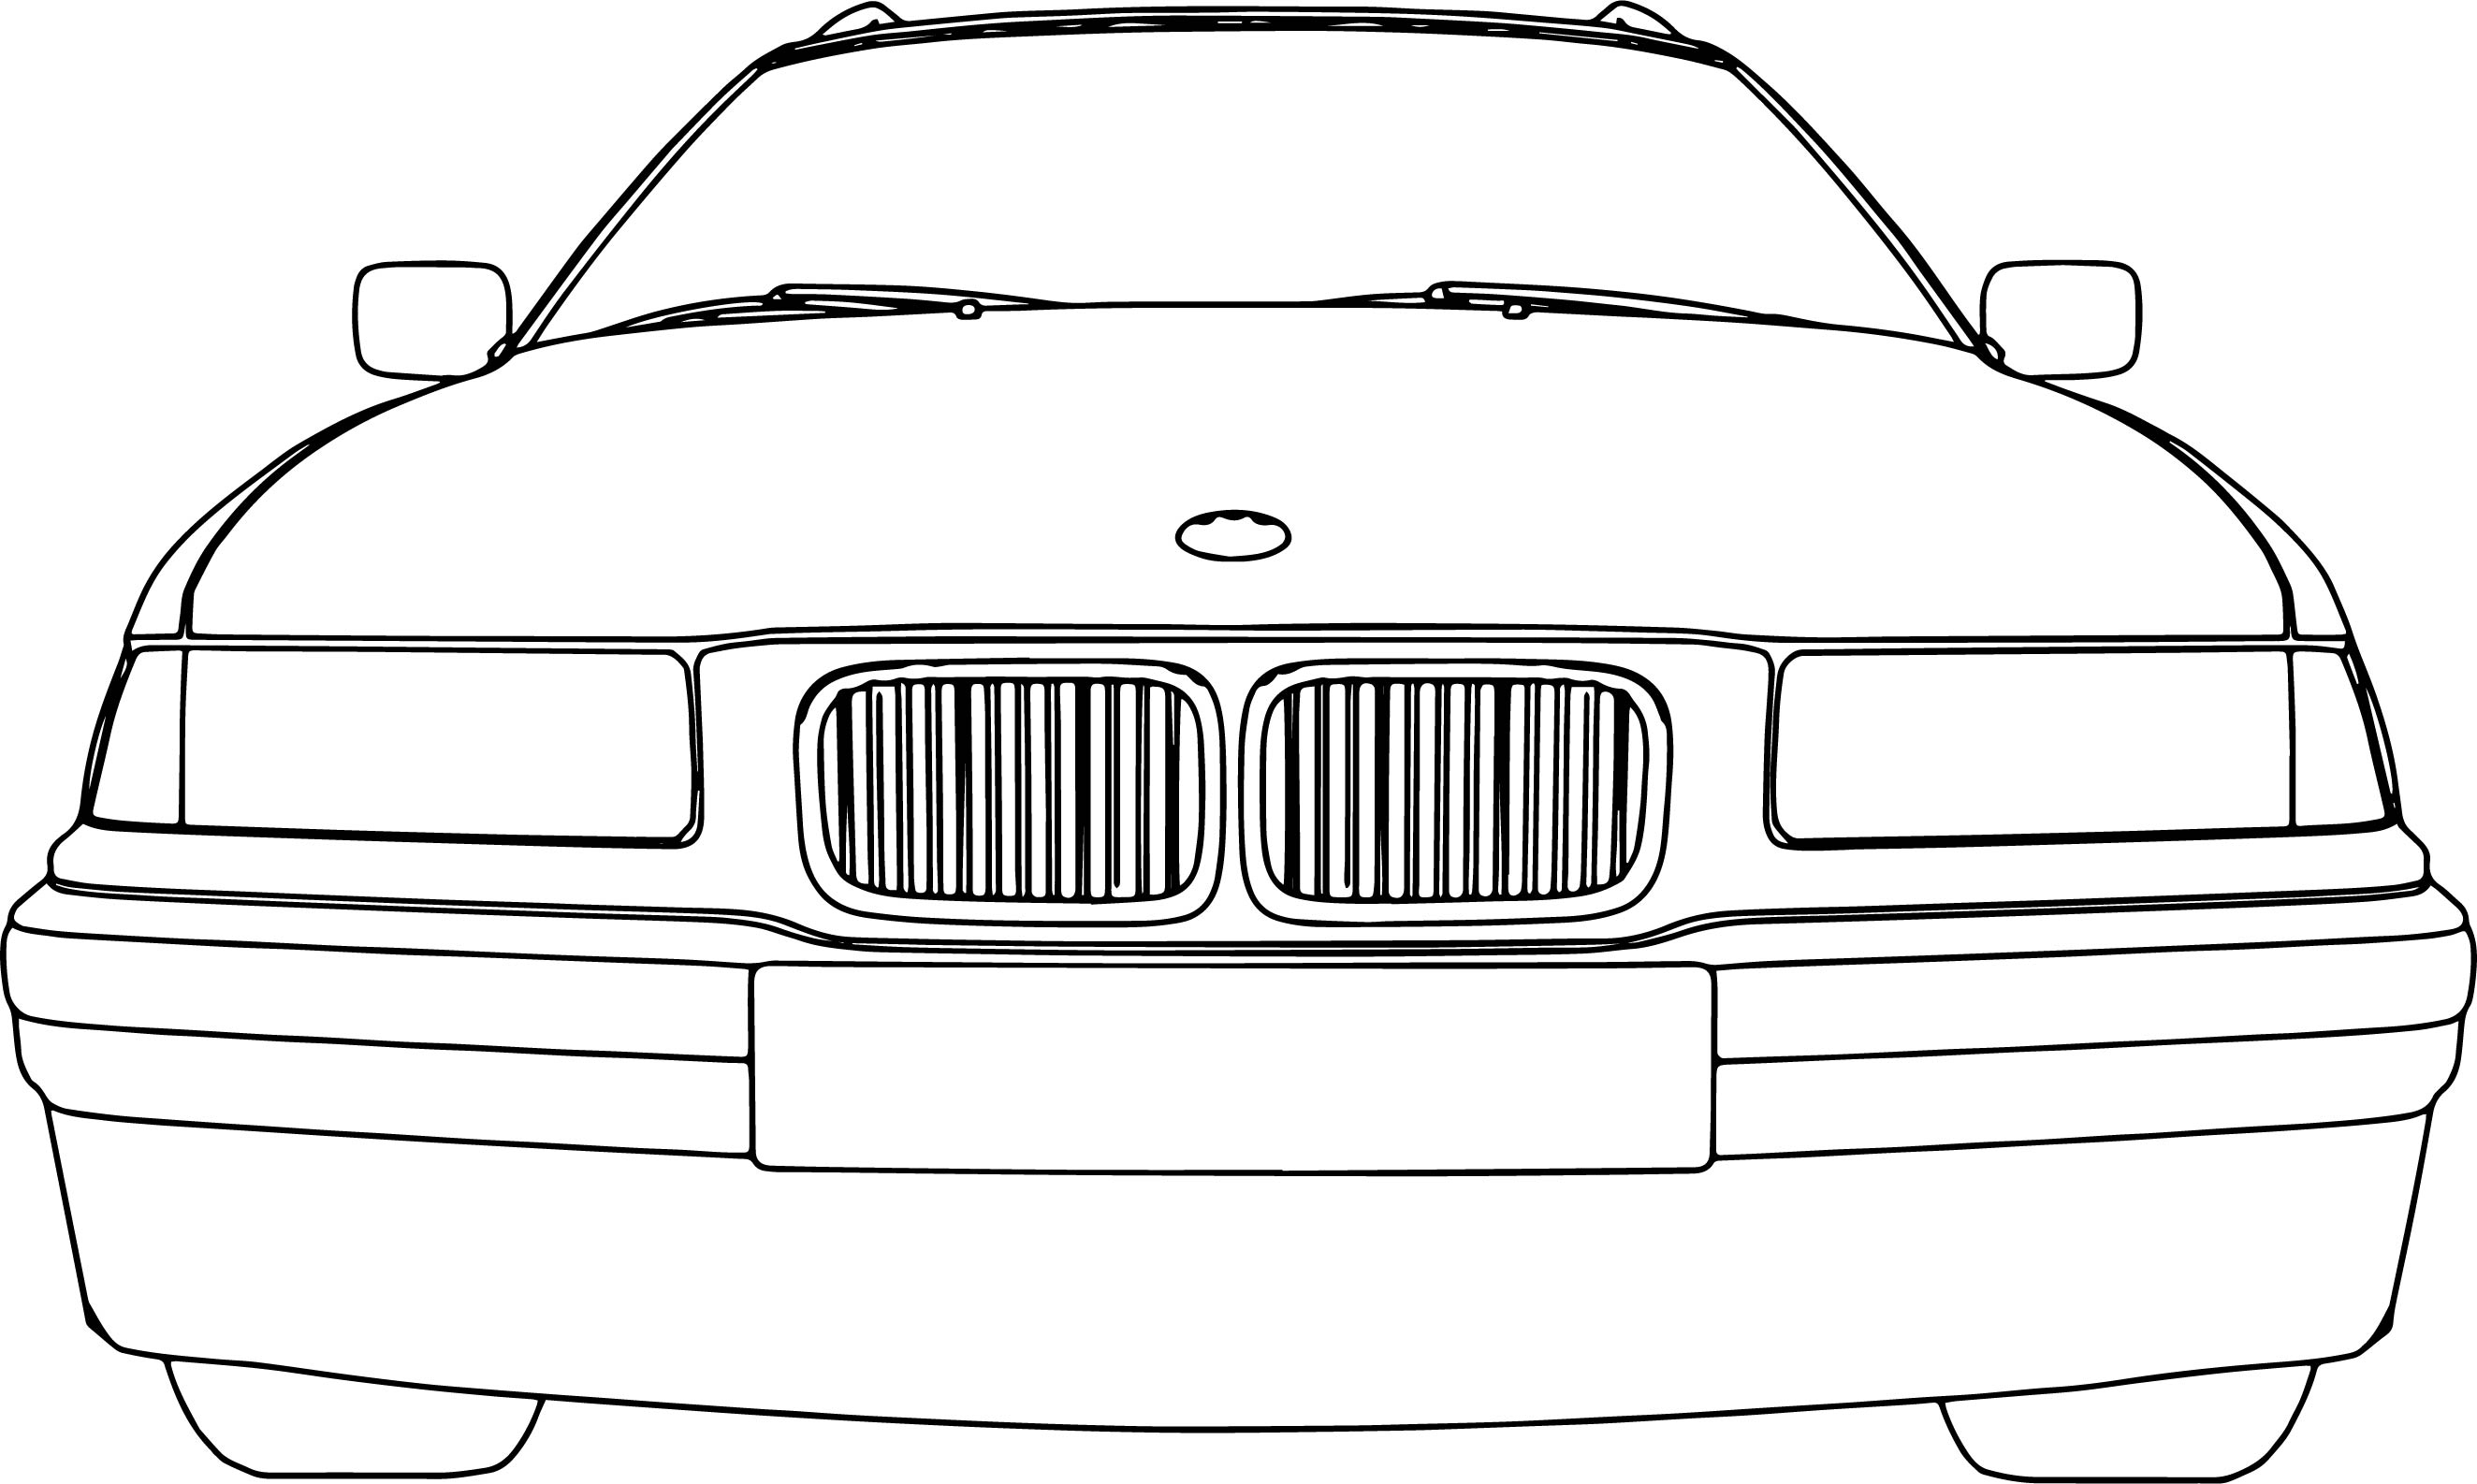 Bumper Car Coloring Pages : Bmw model touring car front coloring page wecoloringpage